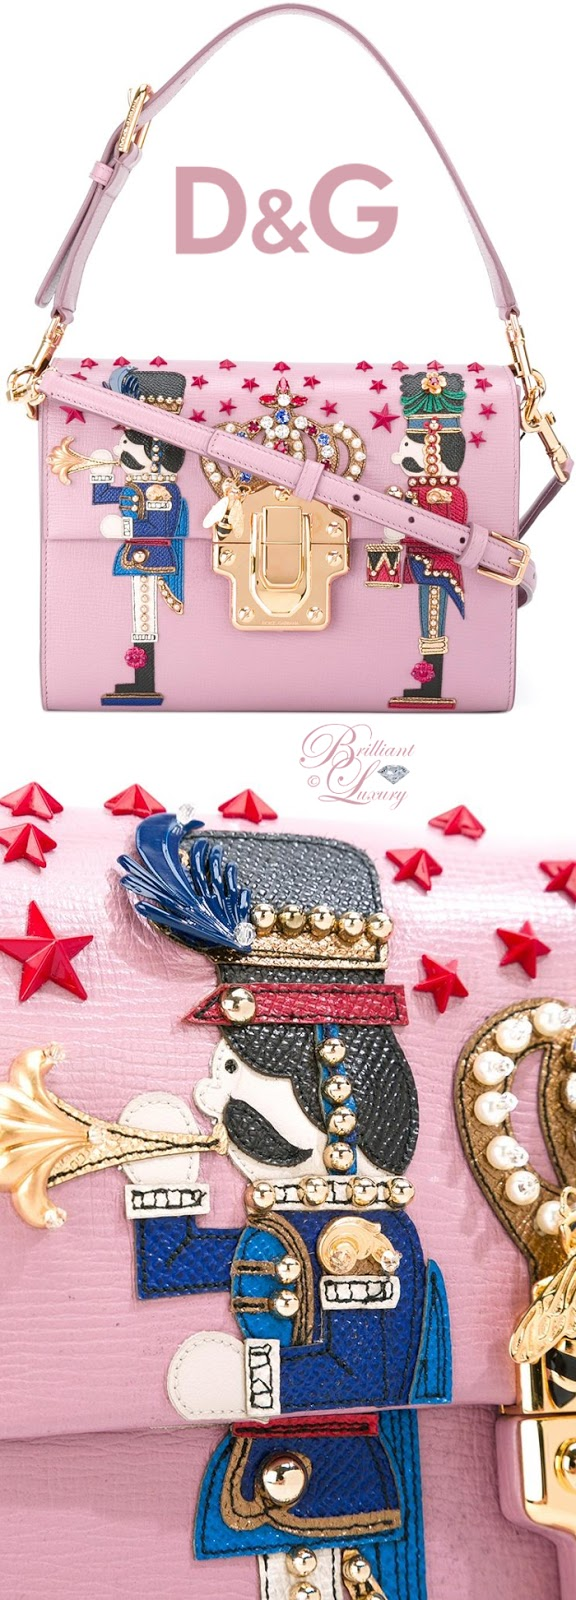 Brilliant Luxury ♦ Dolce & Gabbana Lucia Shoulder Bag